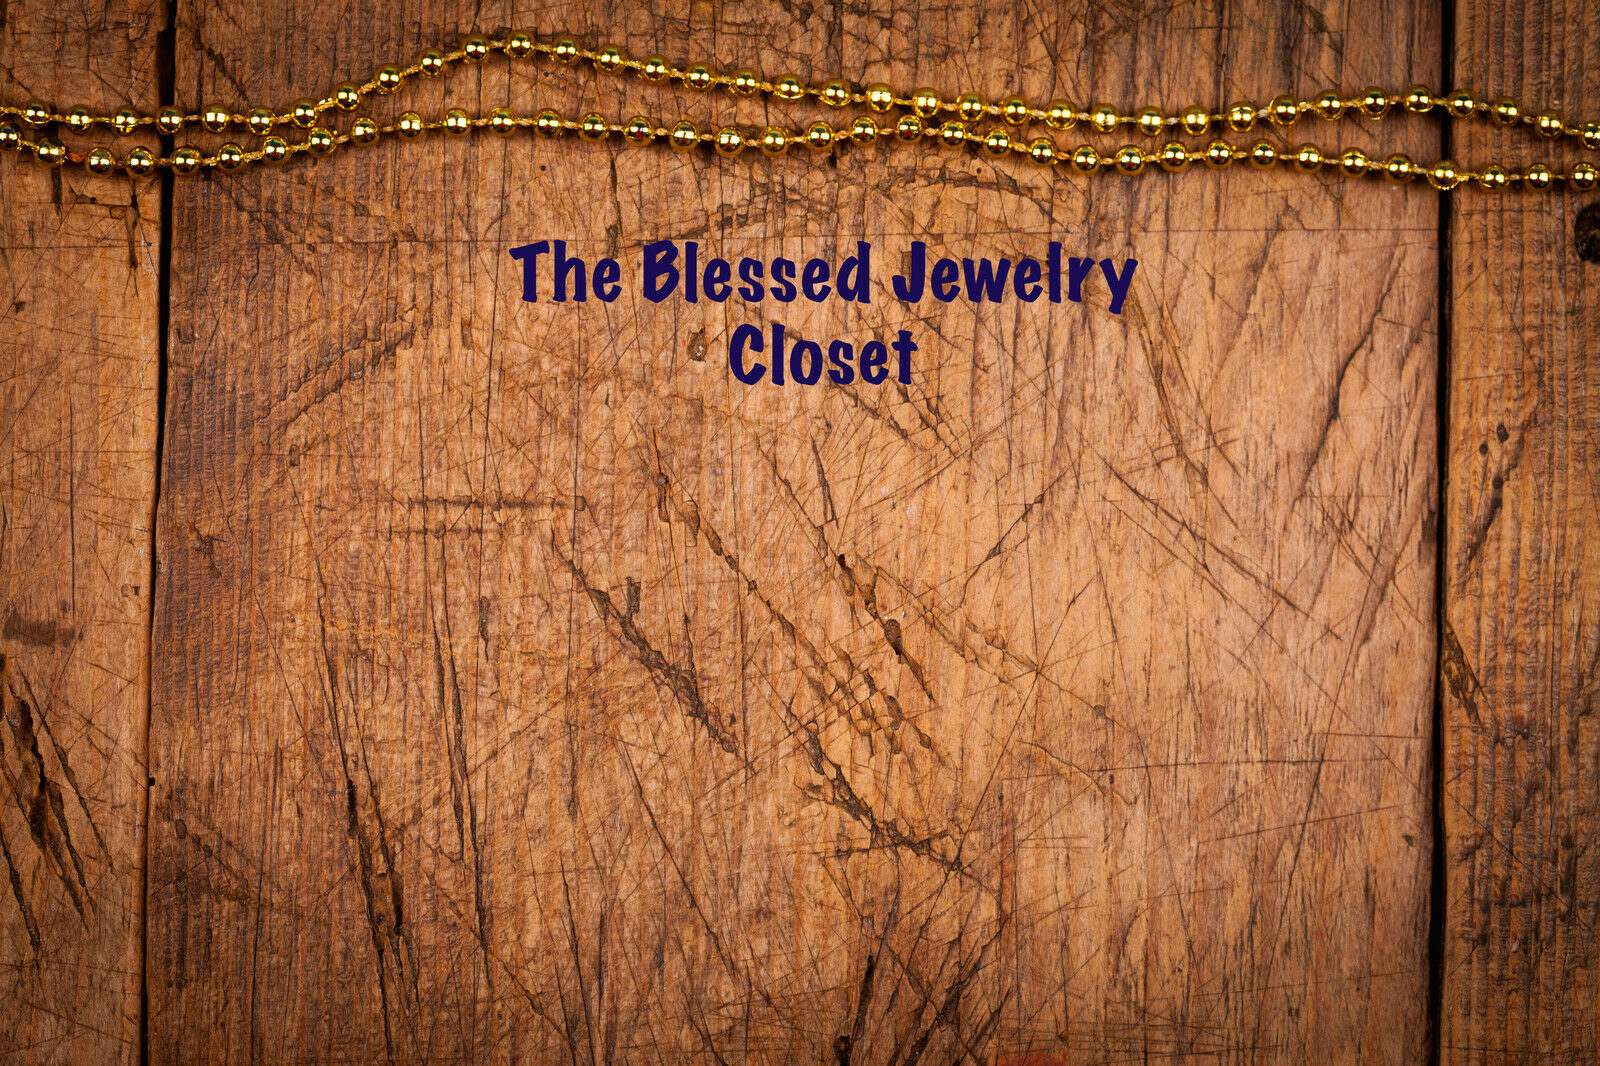 The Blessed Jewelry Closet